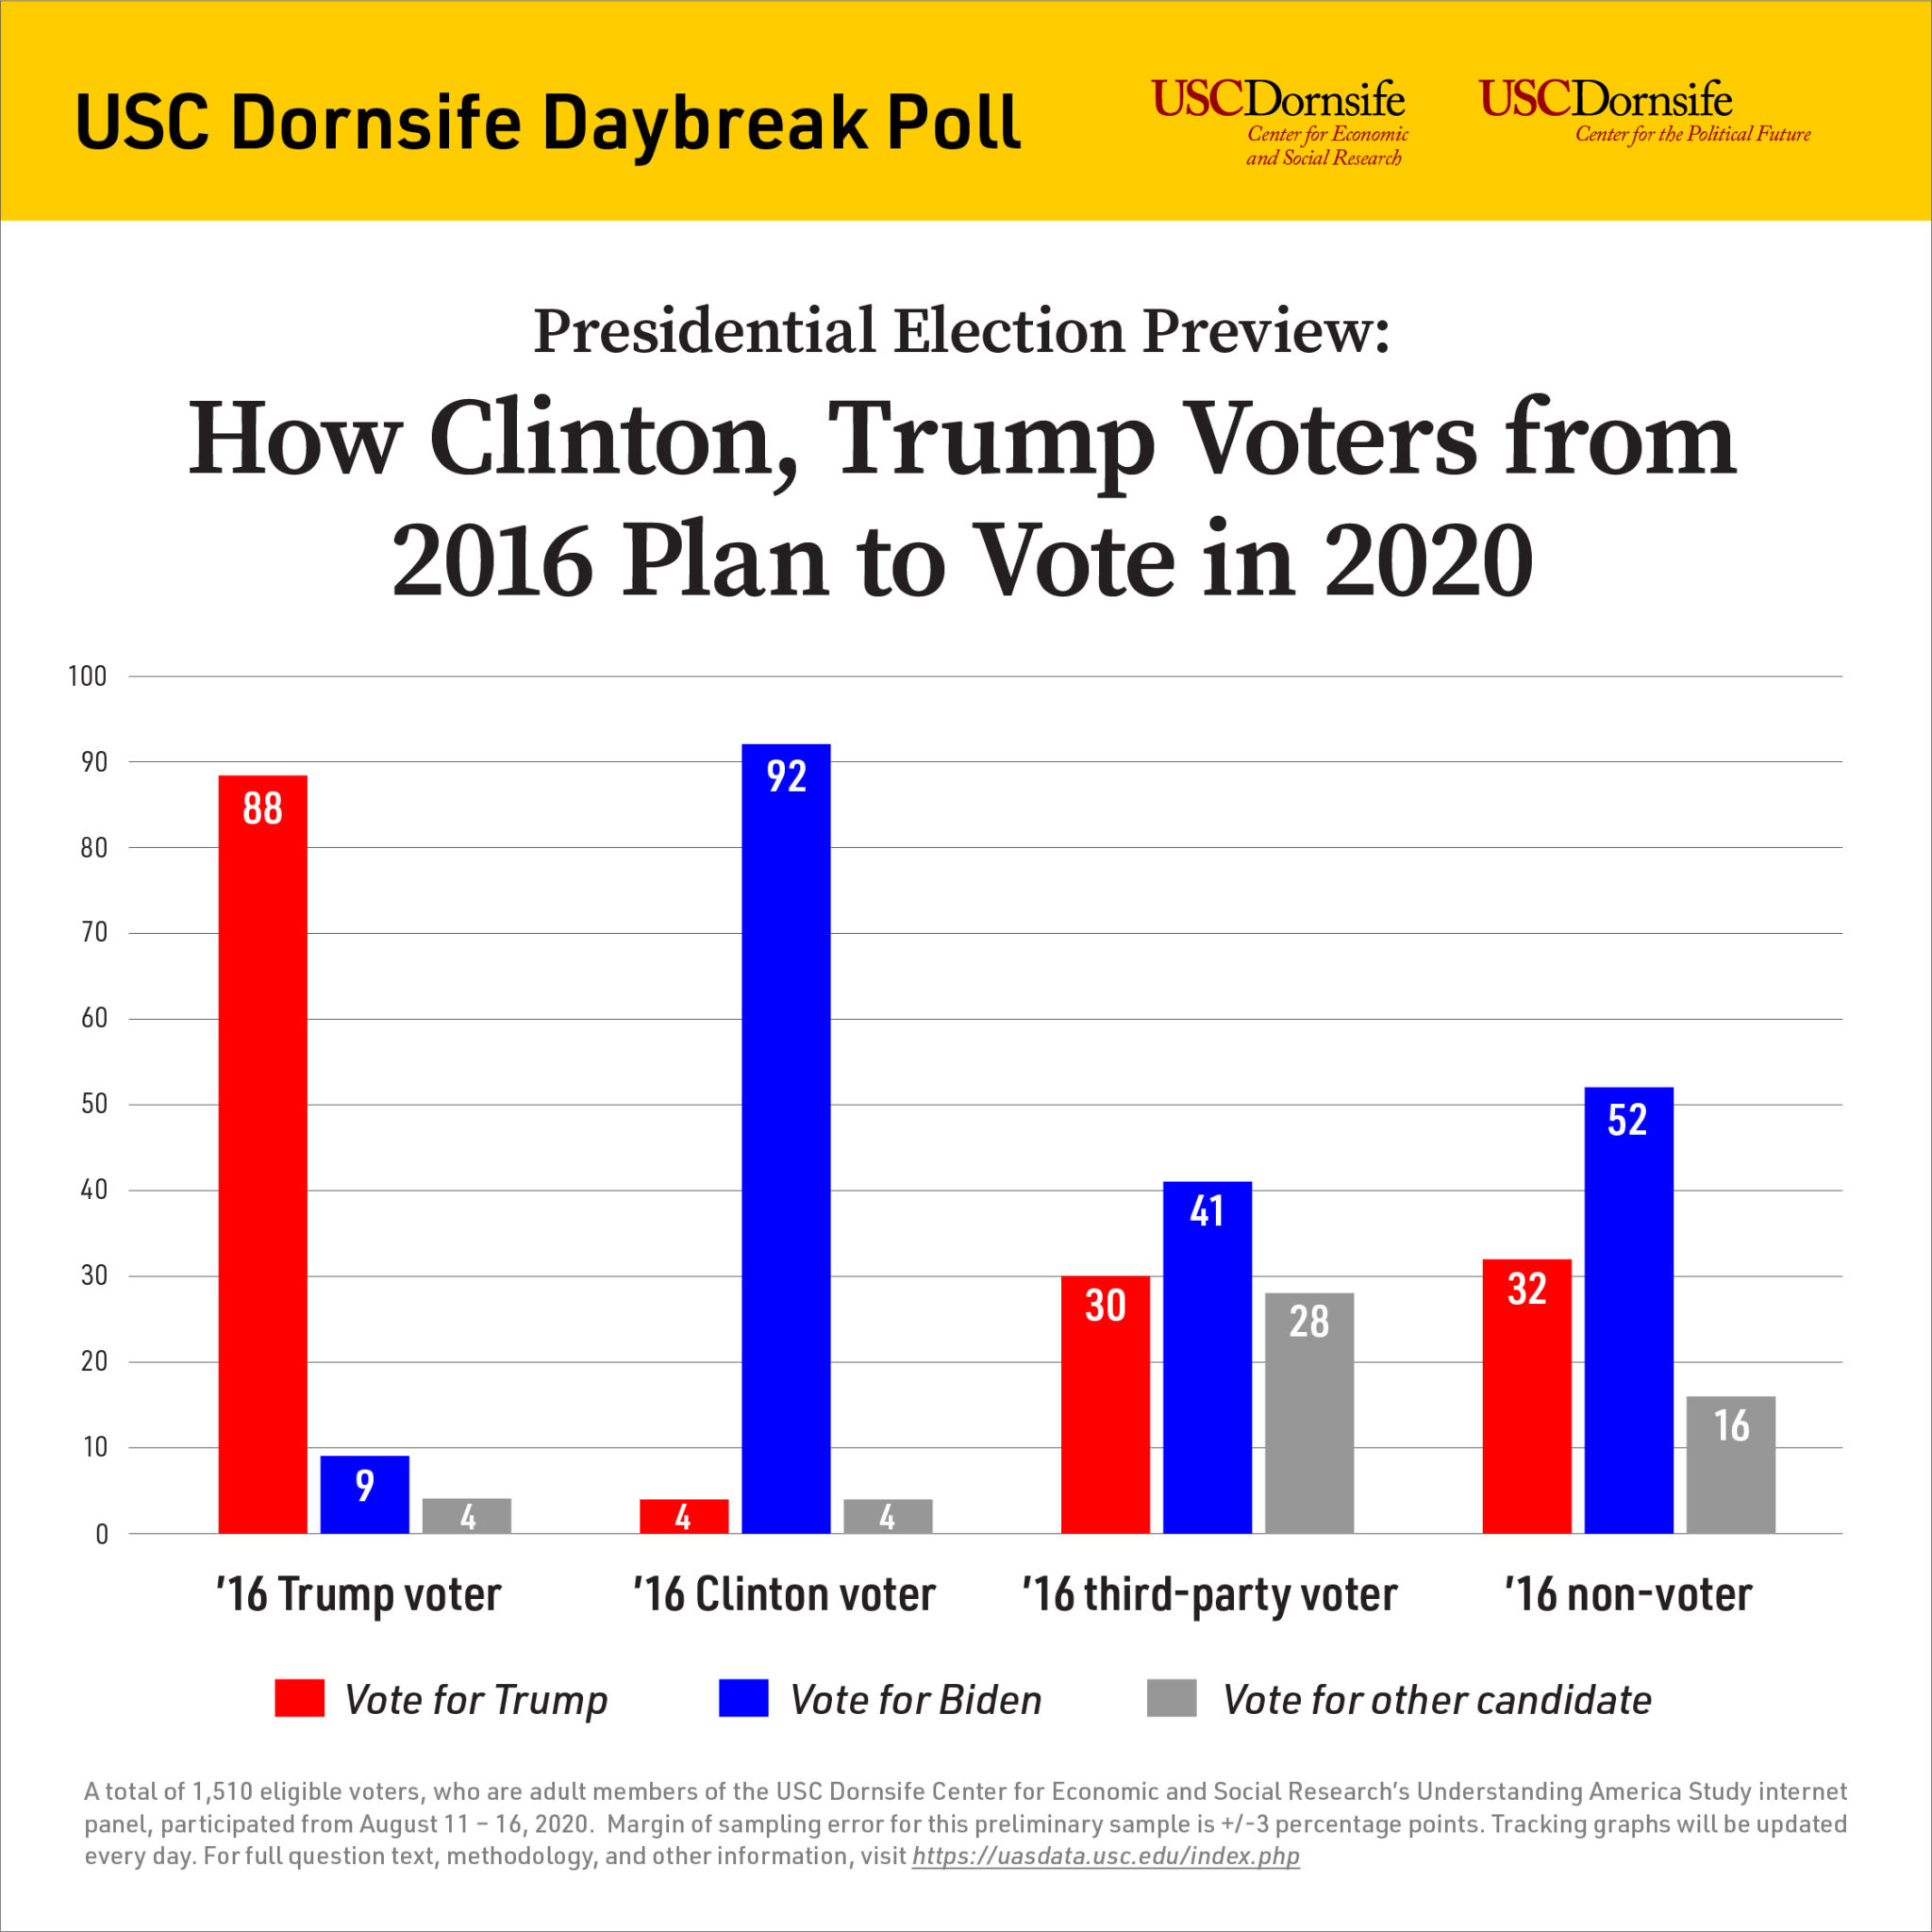 Daybreak-Poll-08182020-01-2048x2048.jpeg